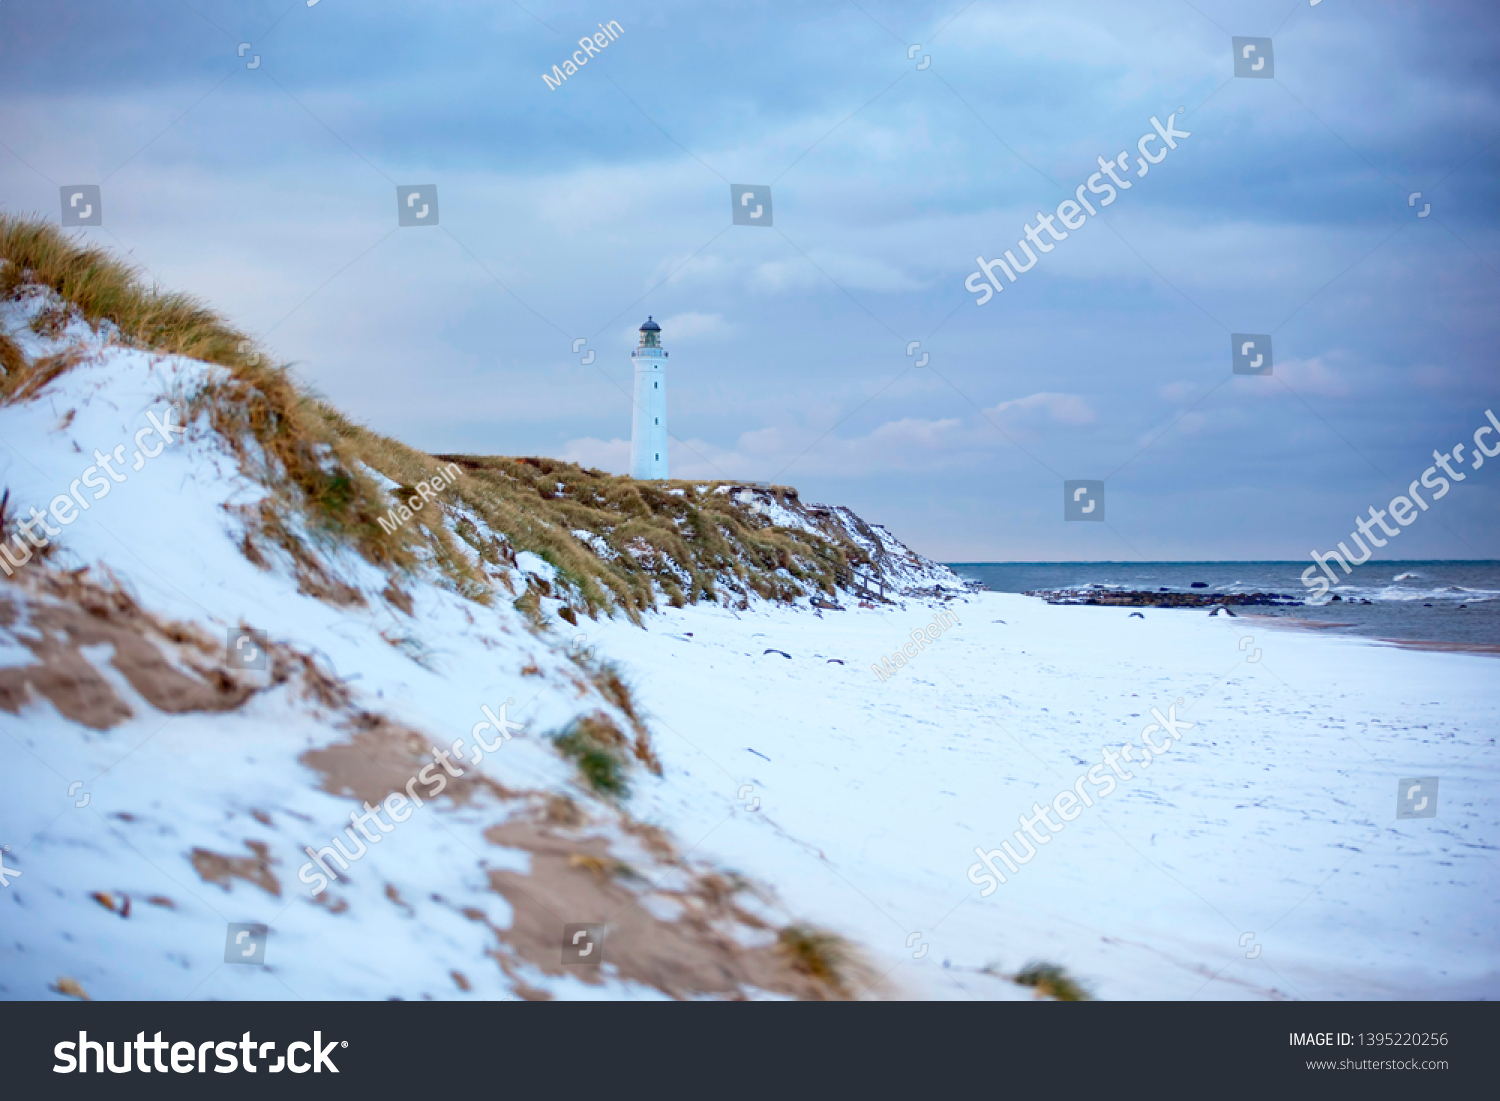 Snowy Coast On Island Sylt Germany Miscellaneous Nature Stock Image